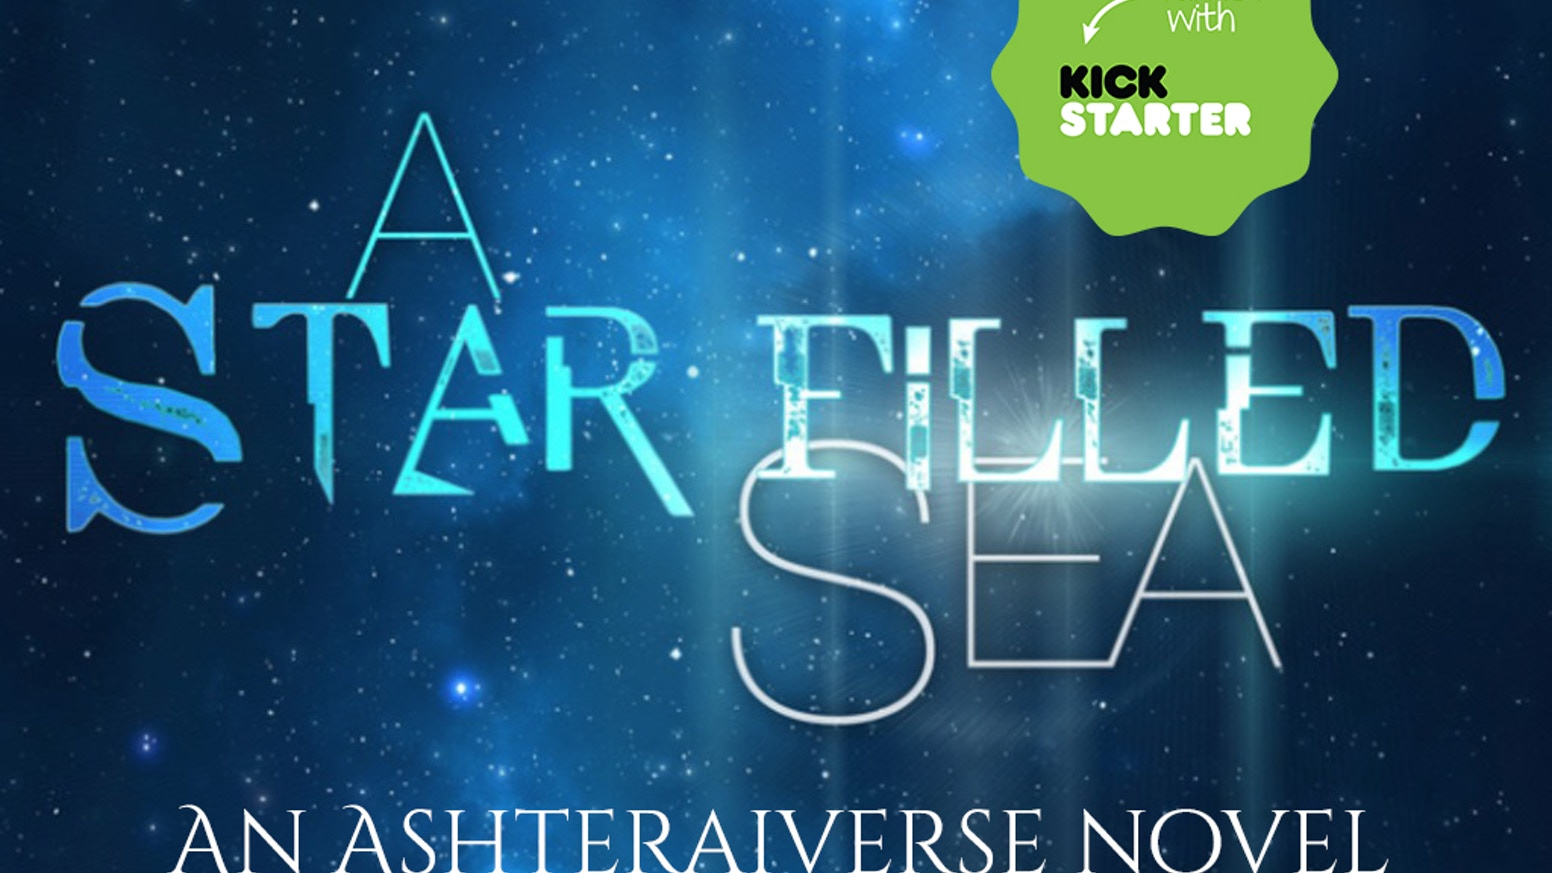 A short novel set in the Ashteraiverse in which a cosmic being trying to be human is stuck on a spaceship with a murderer on the loose.